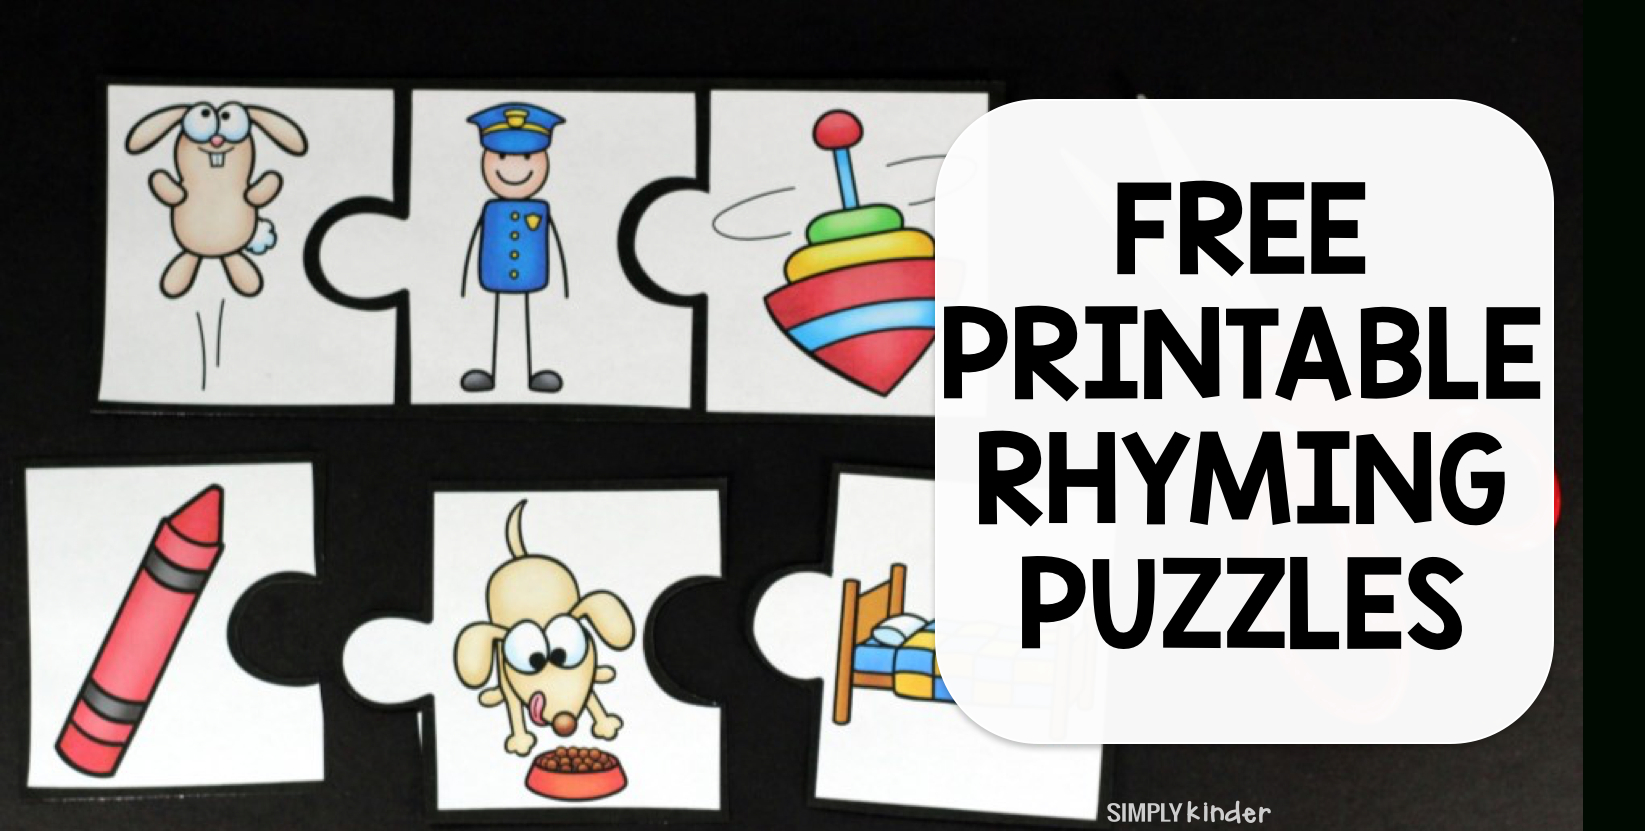 Rhyming Puzzles - Simply Kinder - Printable Rhyming Puzzles